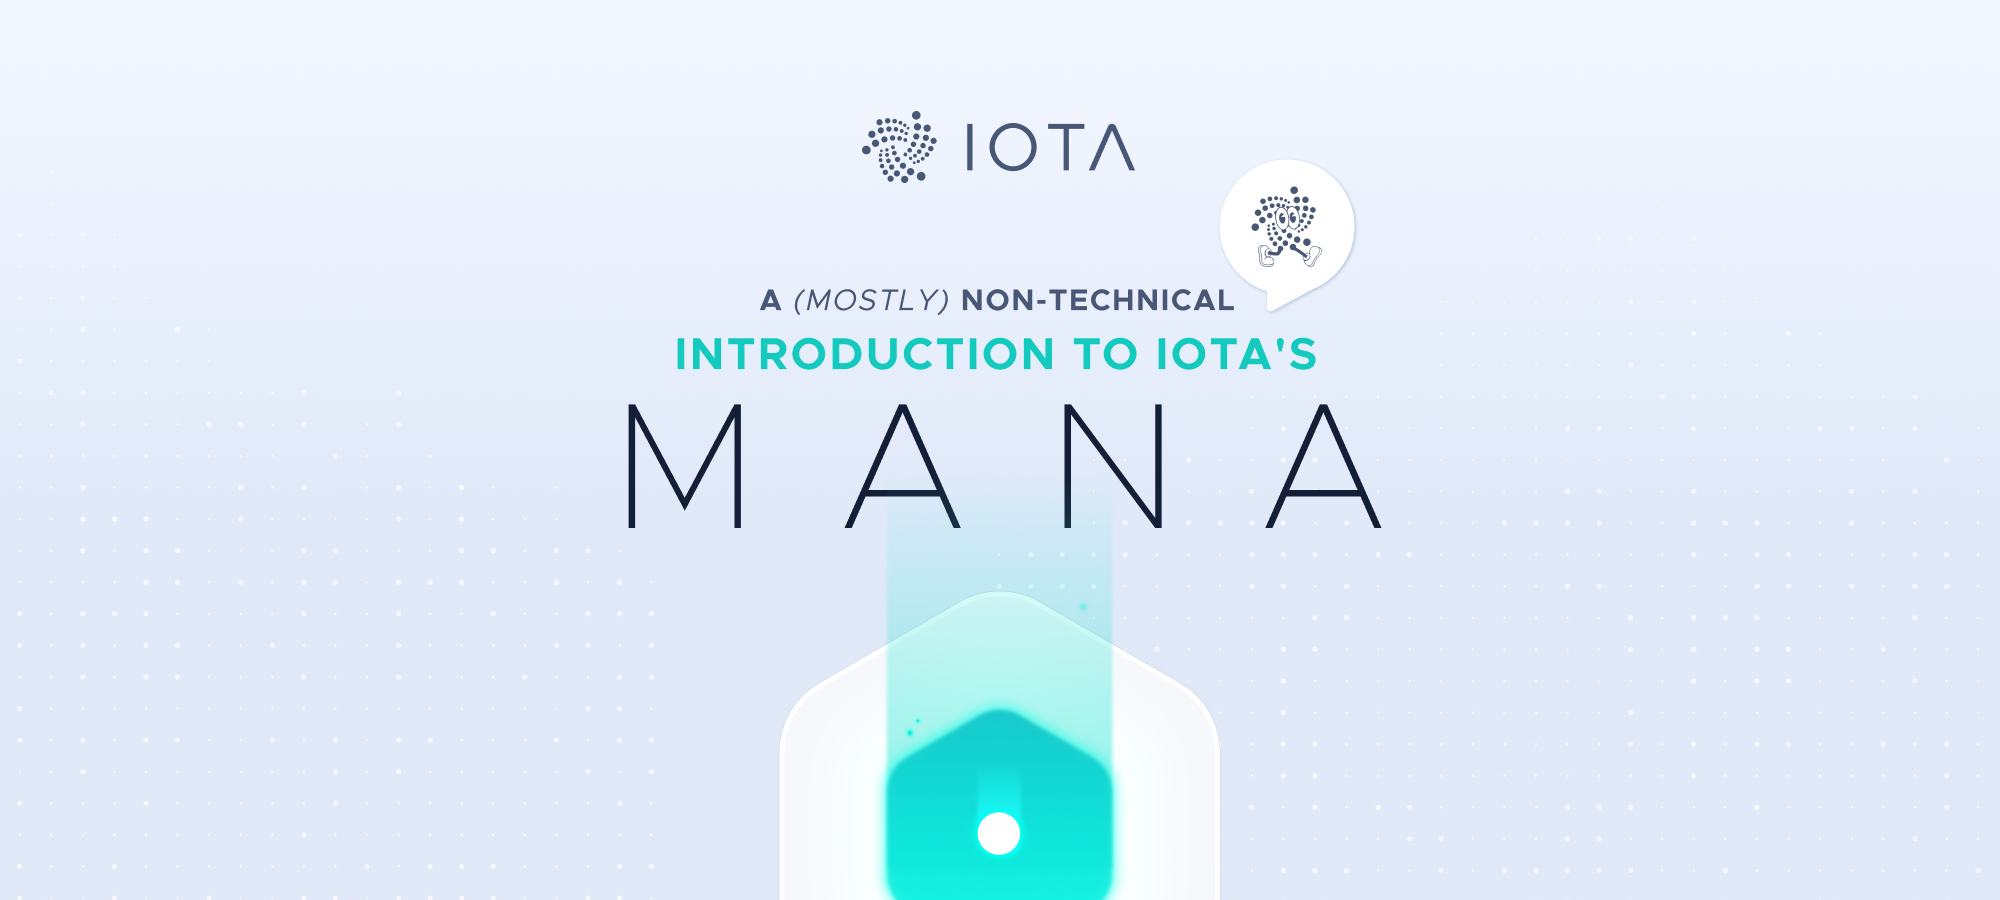 A (mostly) non-technical introduction to IOTA's mana